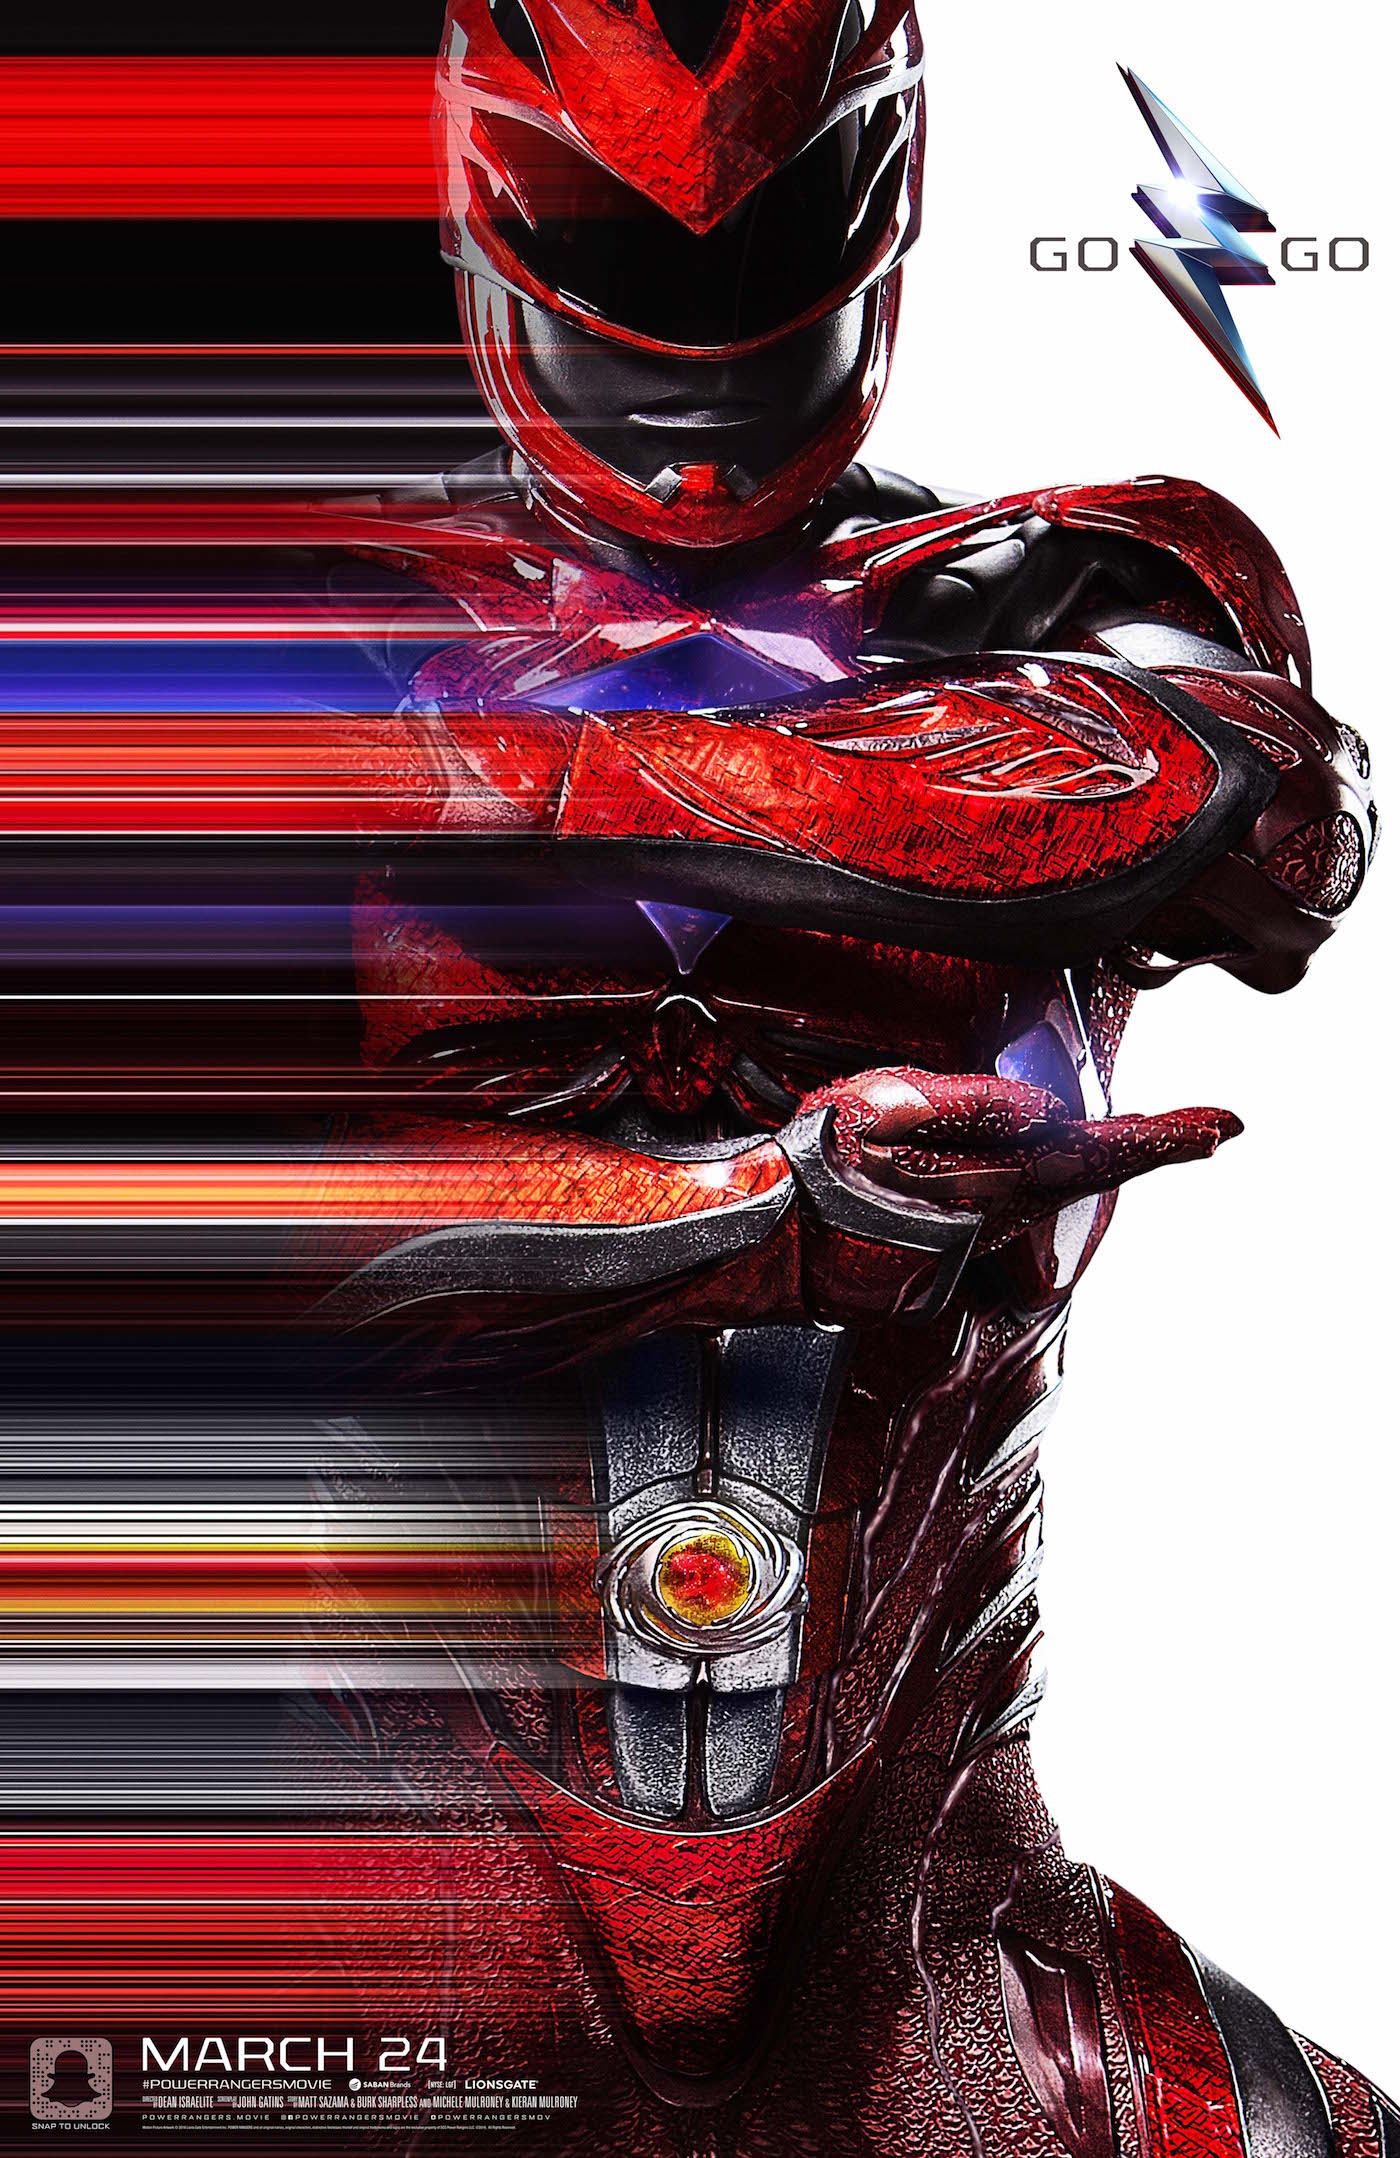 Power rangers red ranger poster dinosaur